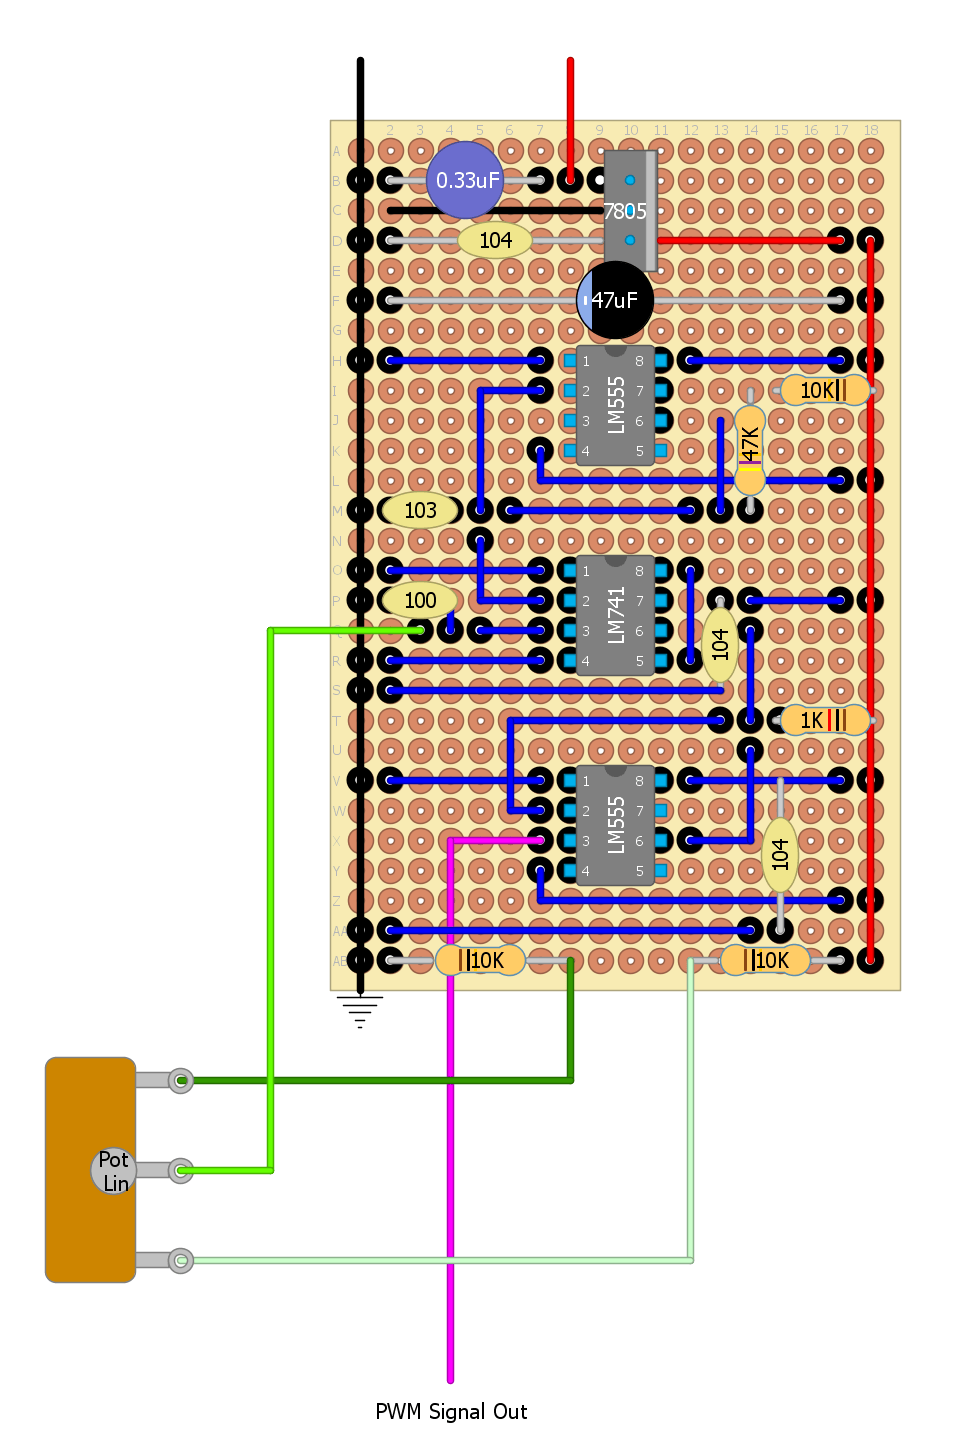 hight resolution of  thing http www overclockers com forums showthread php 641111 building pwm controller for 4 wires pwm fan p 6473318 viewfull 1 post6473318 schematic